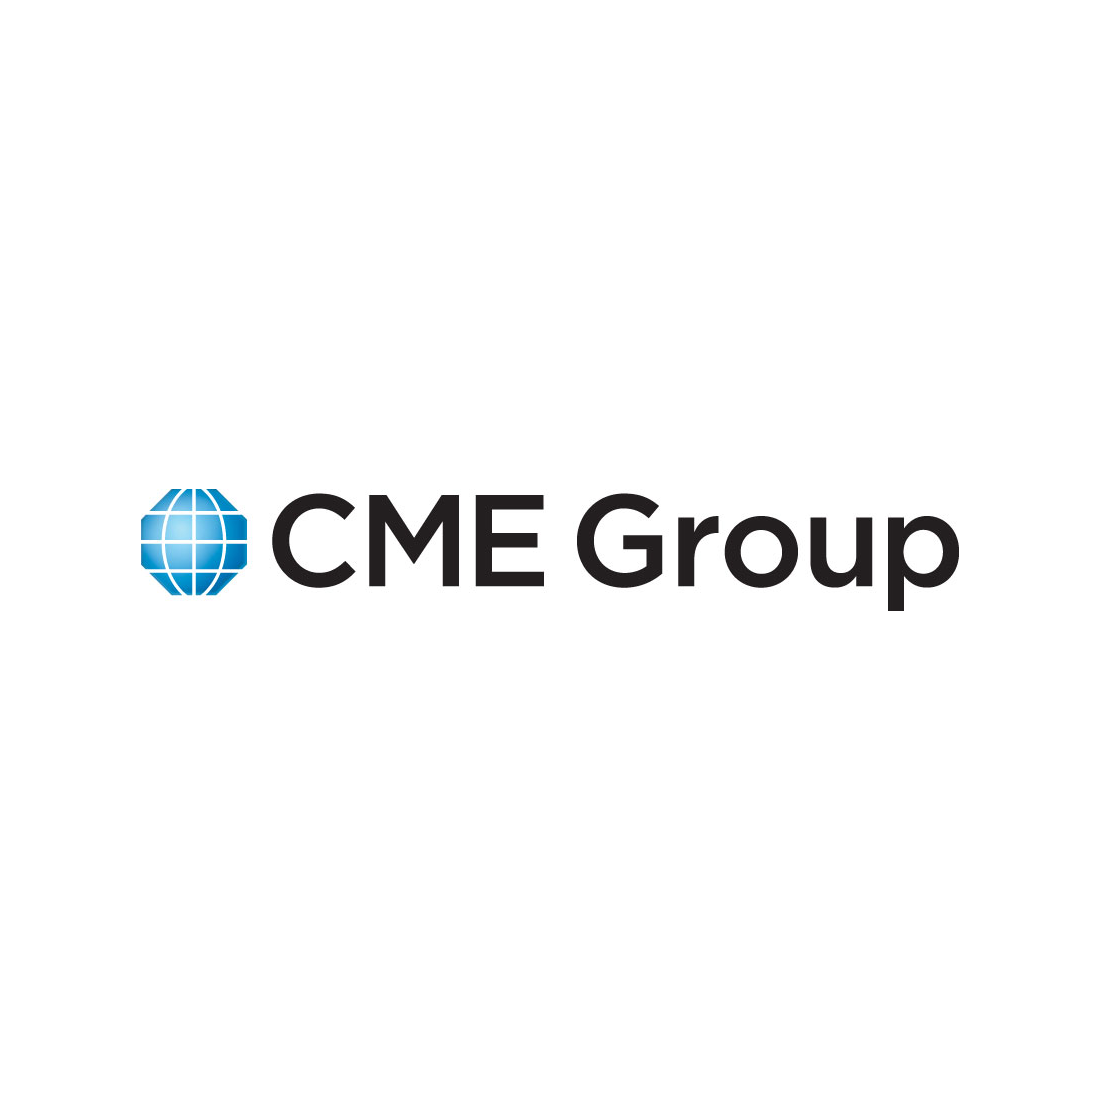 Cme group fx options